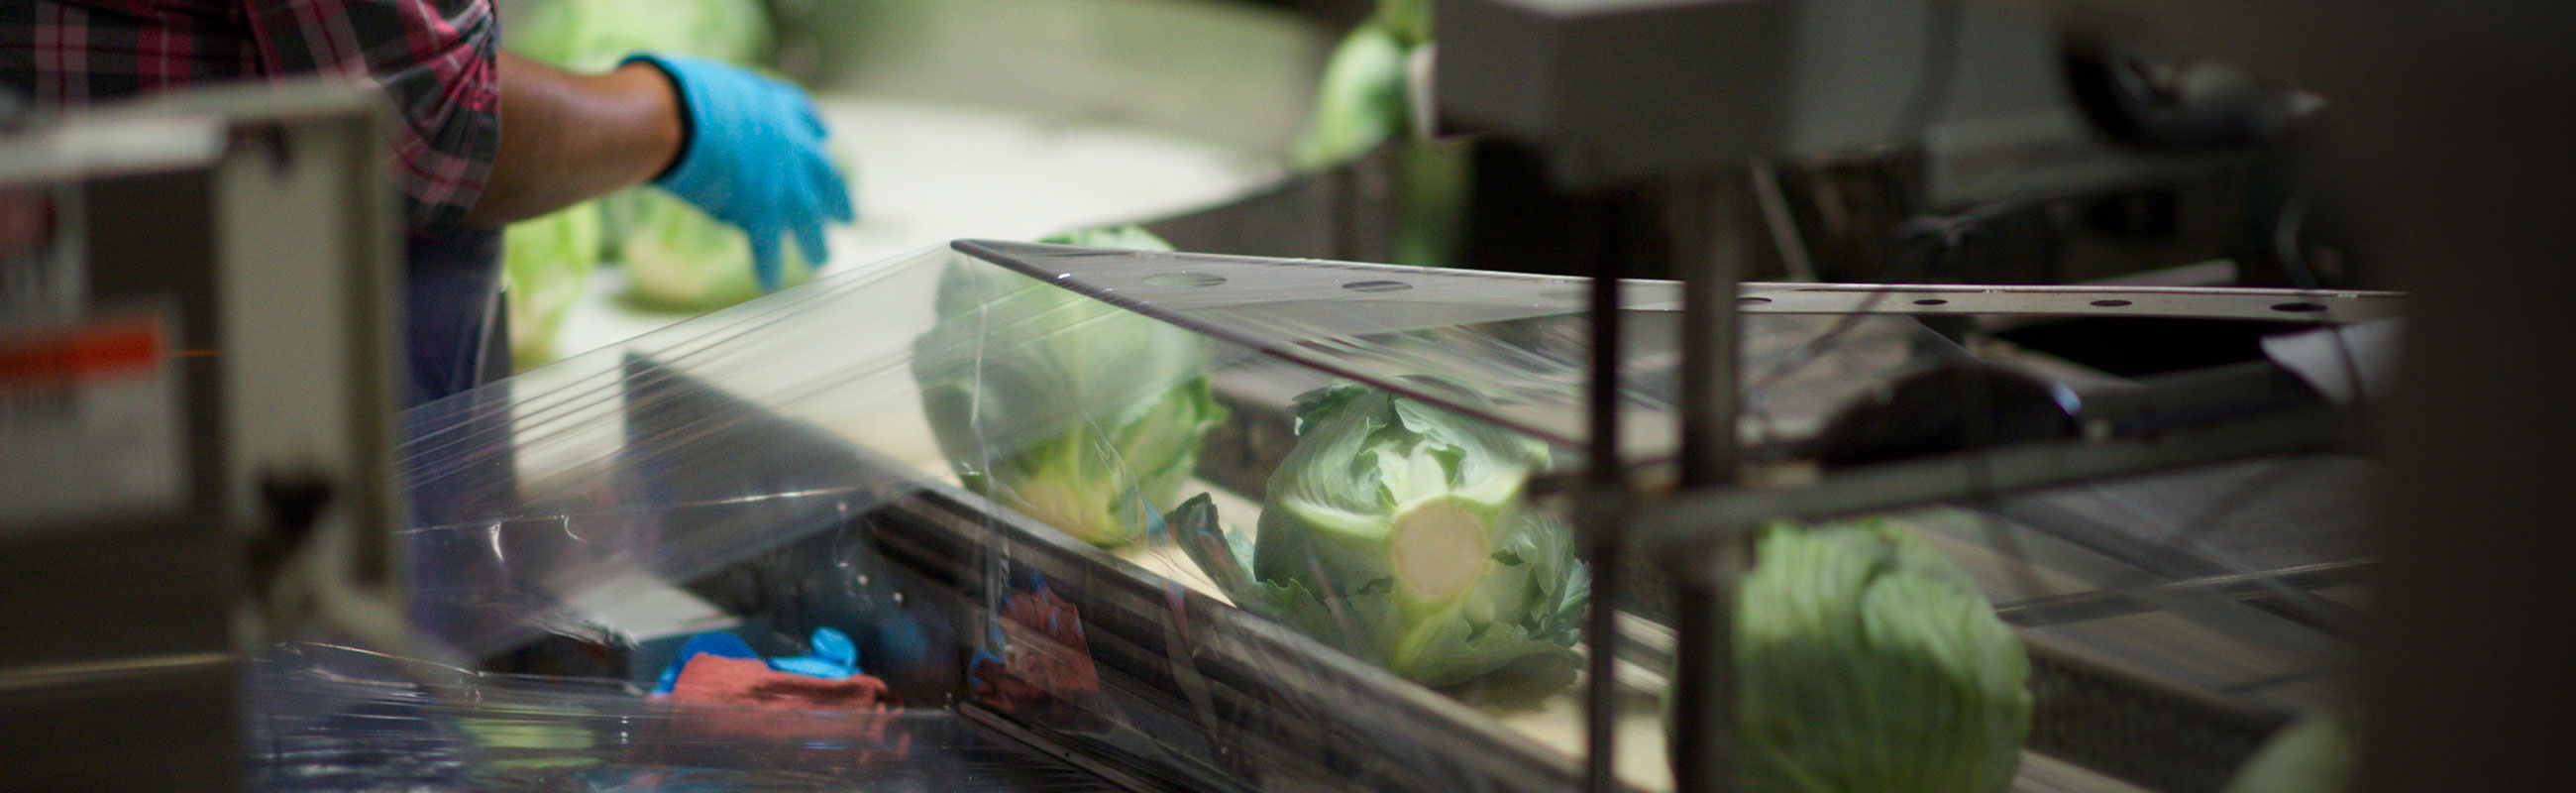 Cabbage shrink film packaging